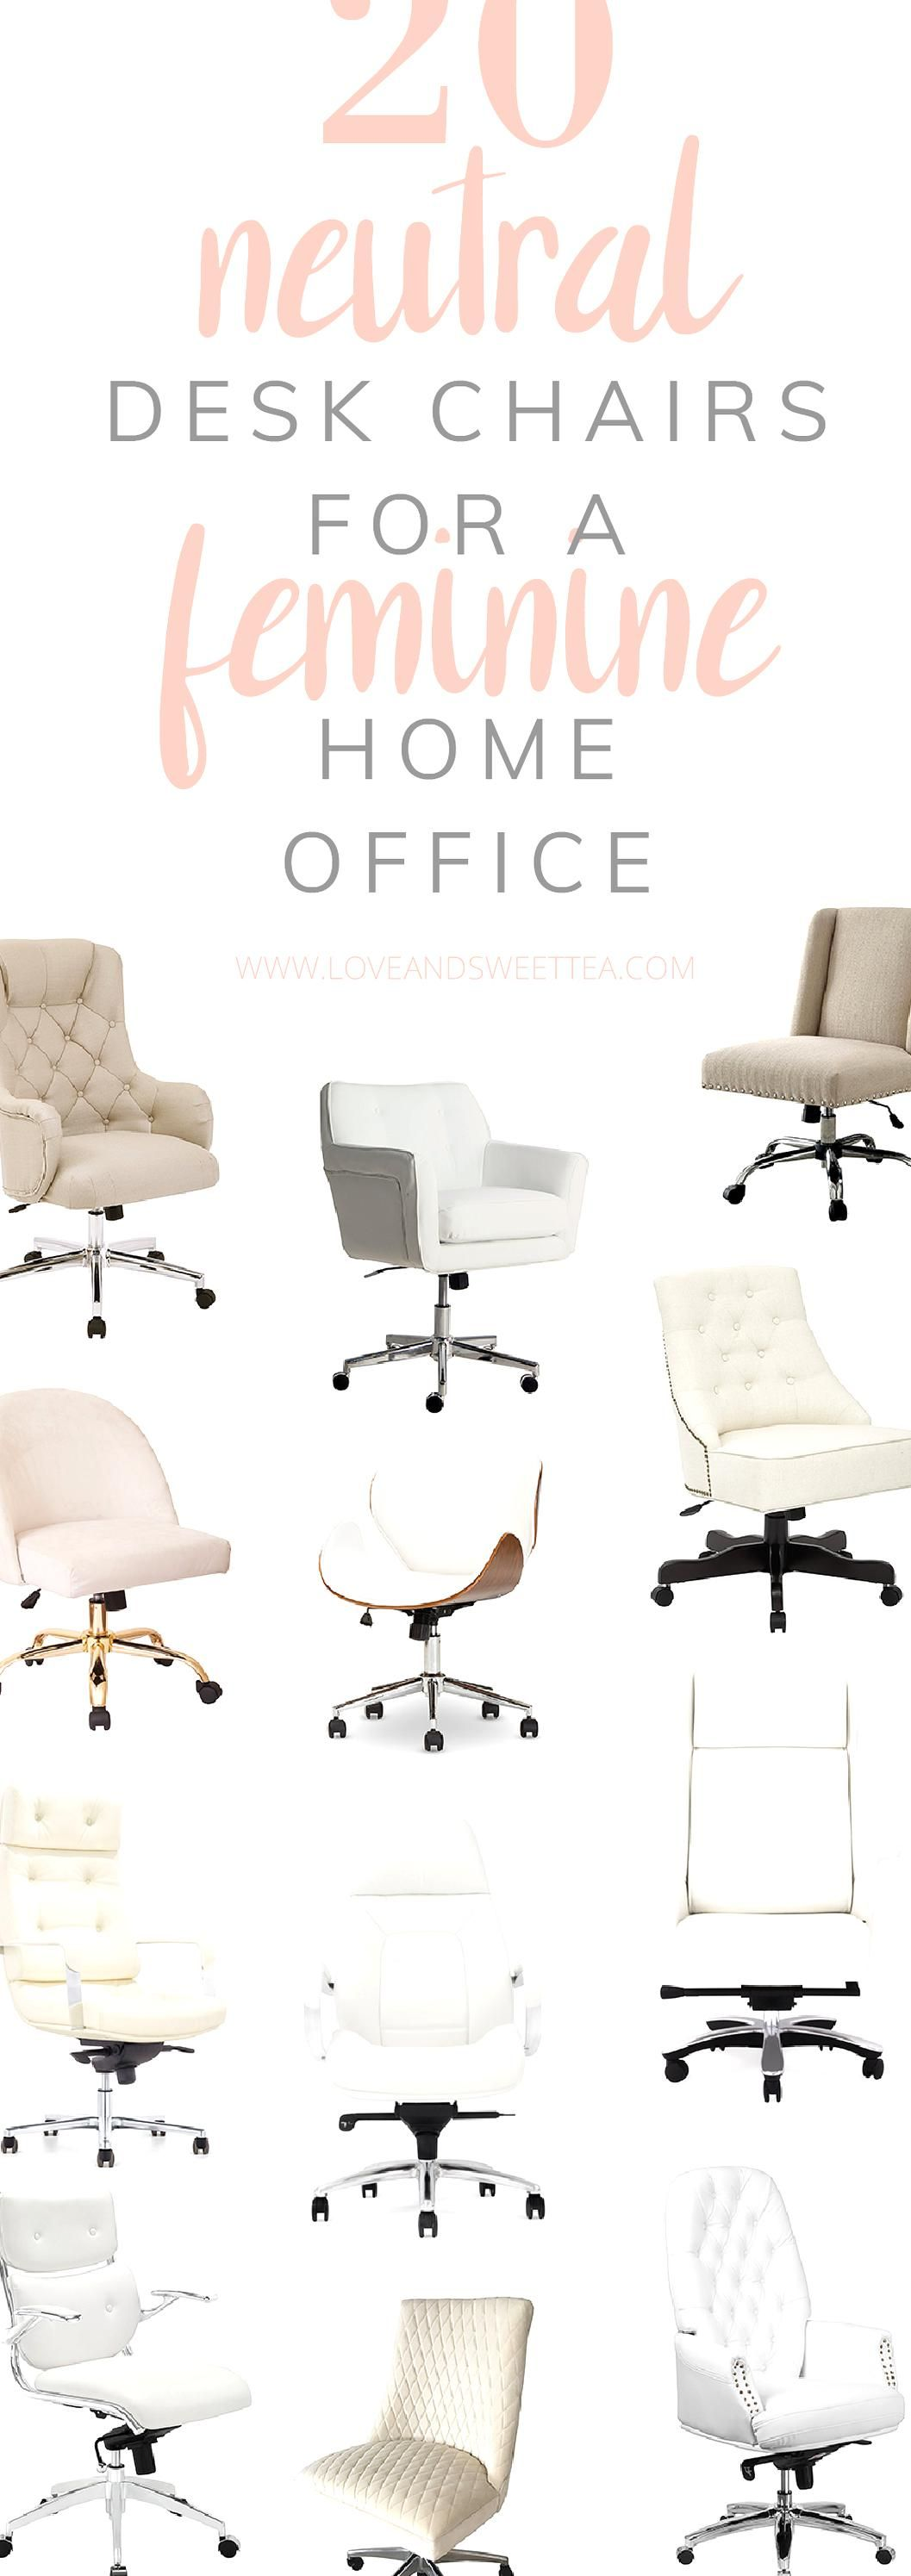 Finding cheapfy desk chairs can be a serious challenge if